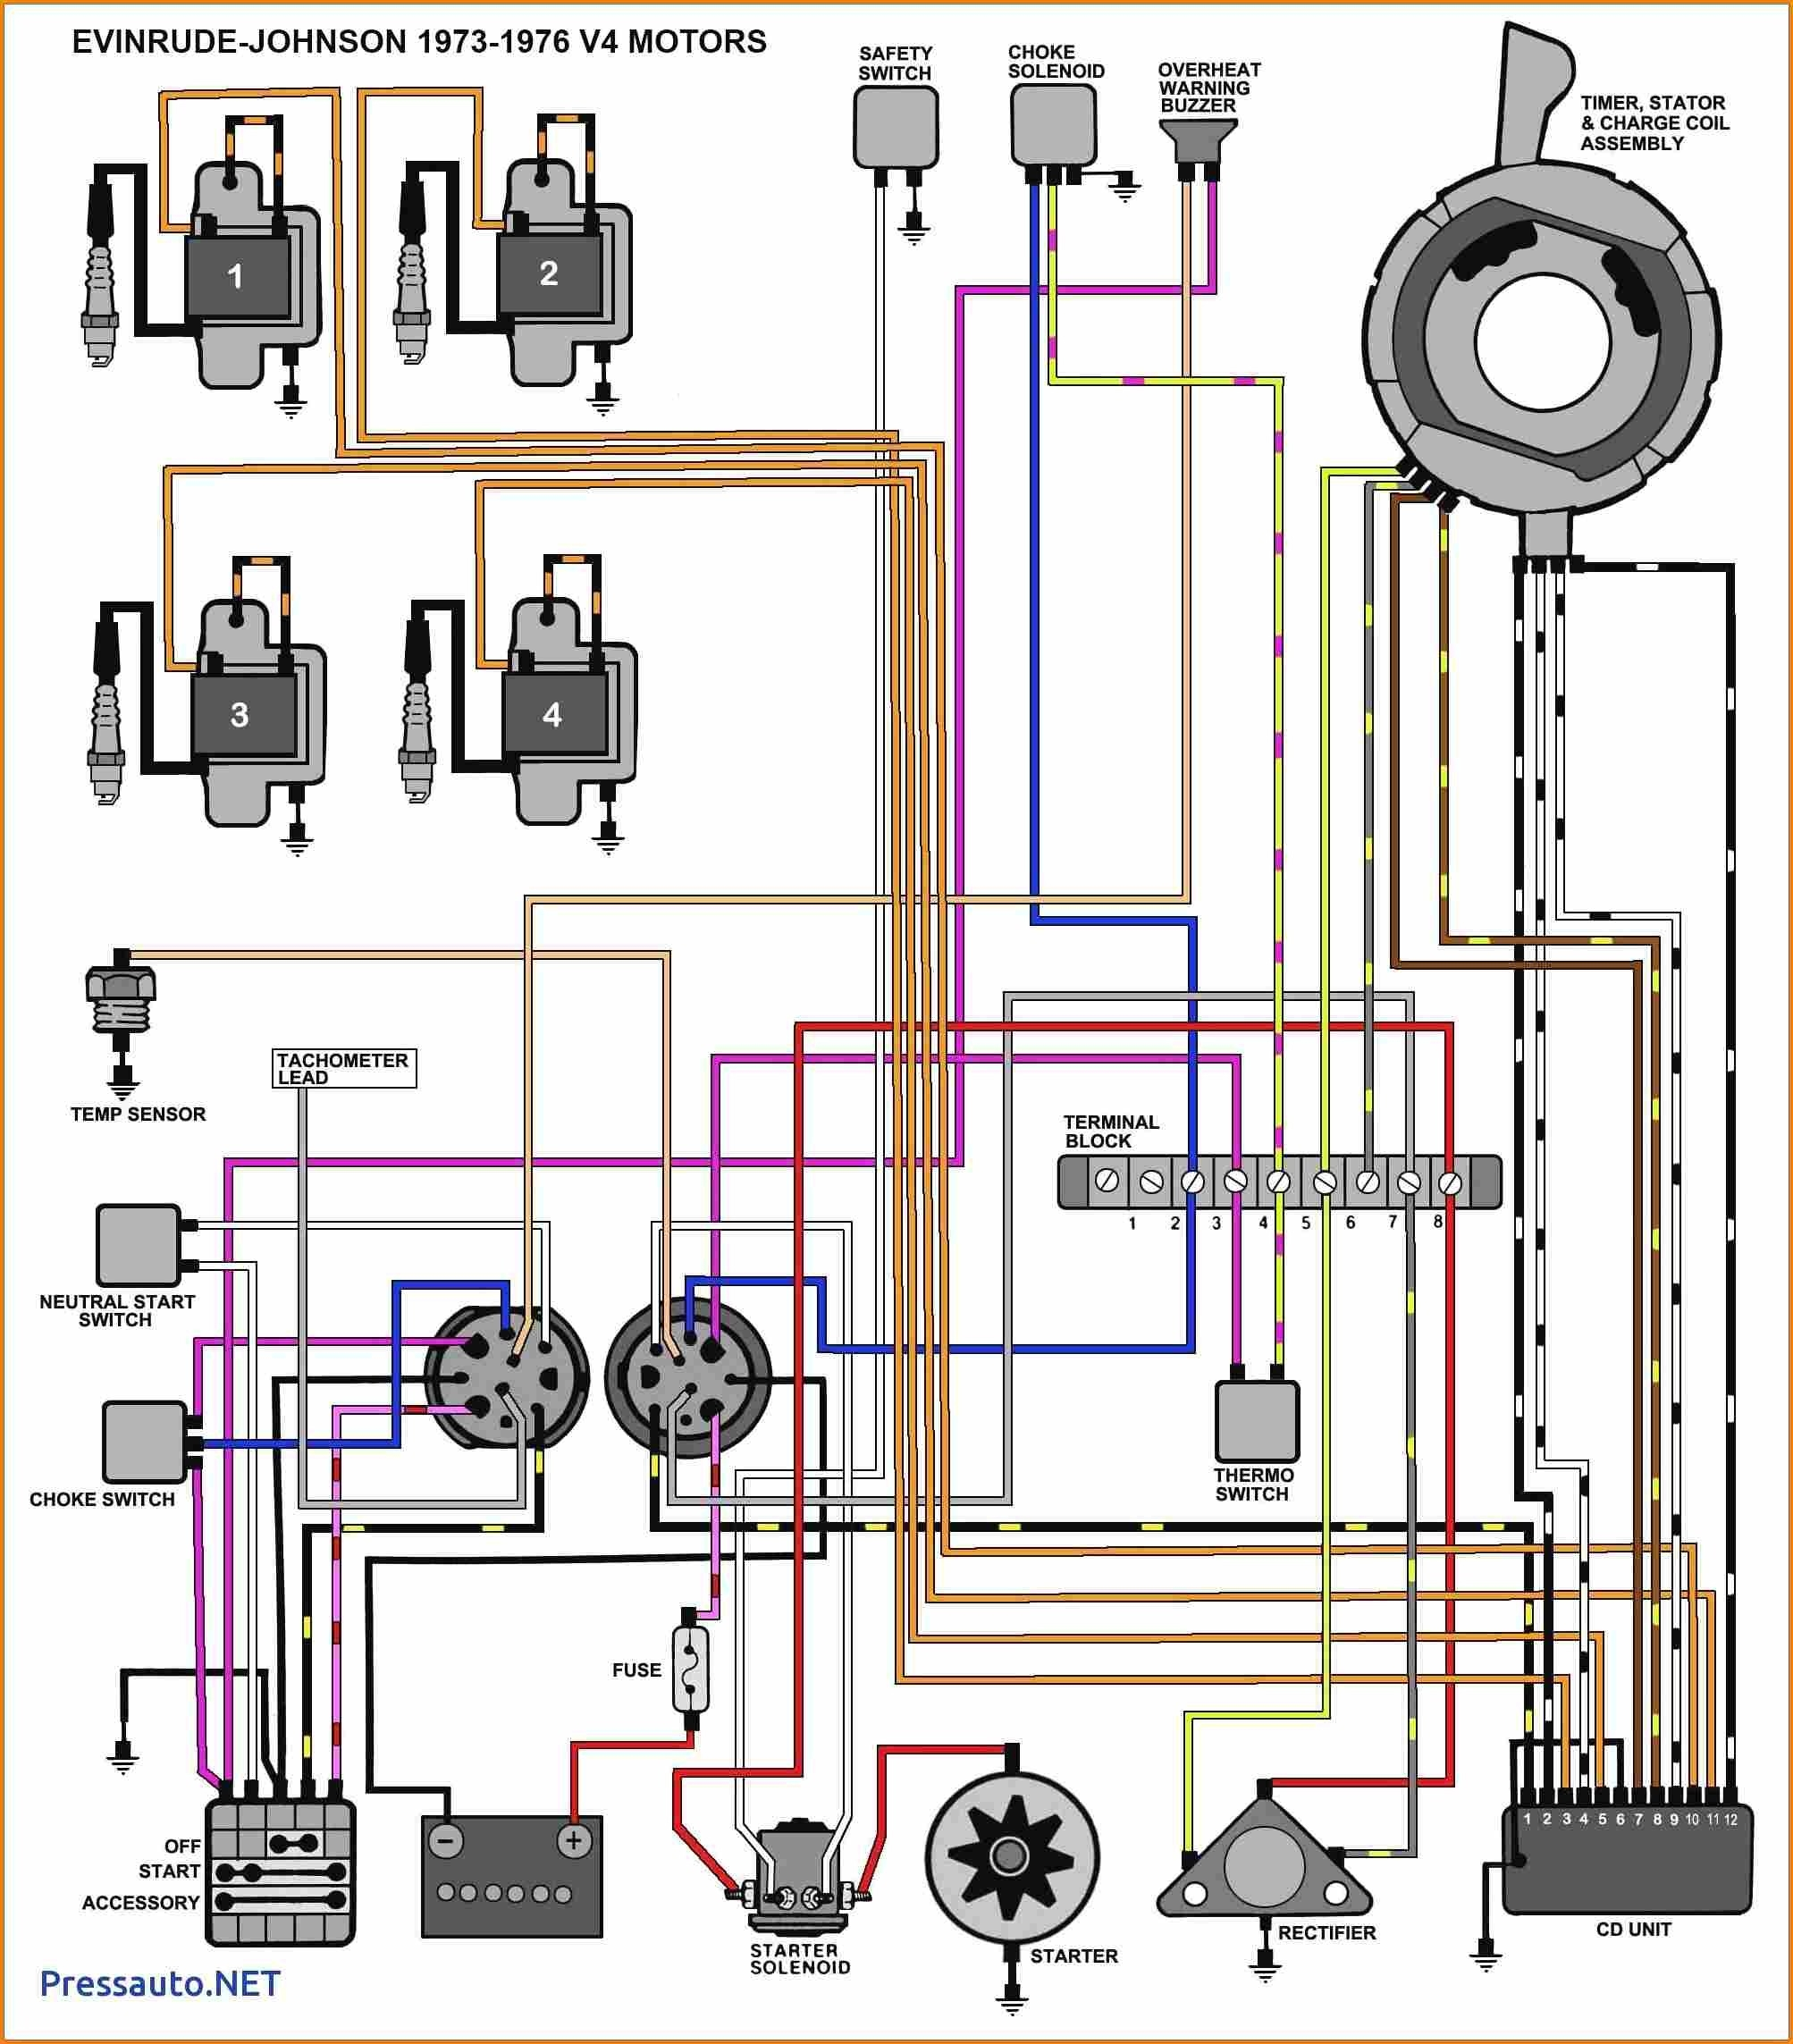 mercury wire diagram wiring diagram Mercury 200 HP Wiring Diagram 1983 mercury zephyr wiring diagram solenoid wiring diagram blog1983 mercury zephyr wiring diagram solenoid wiring diagram